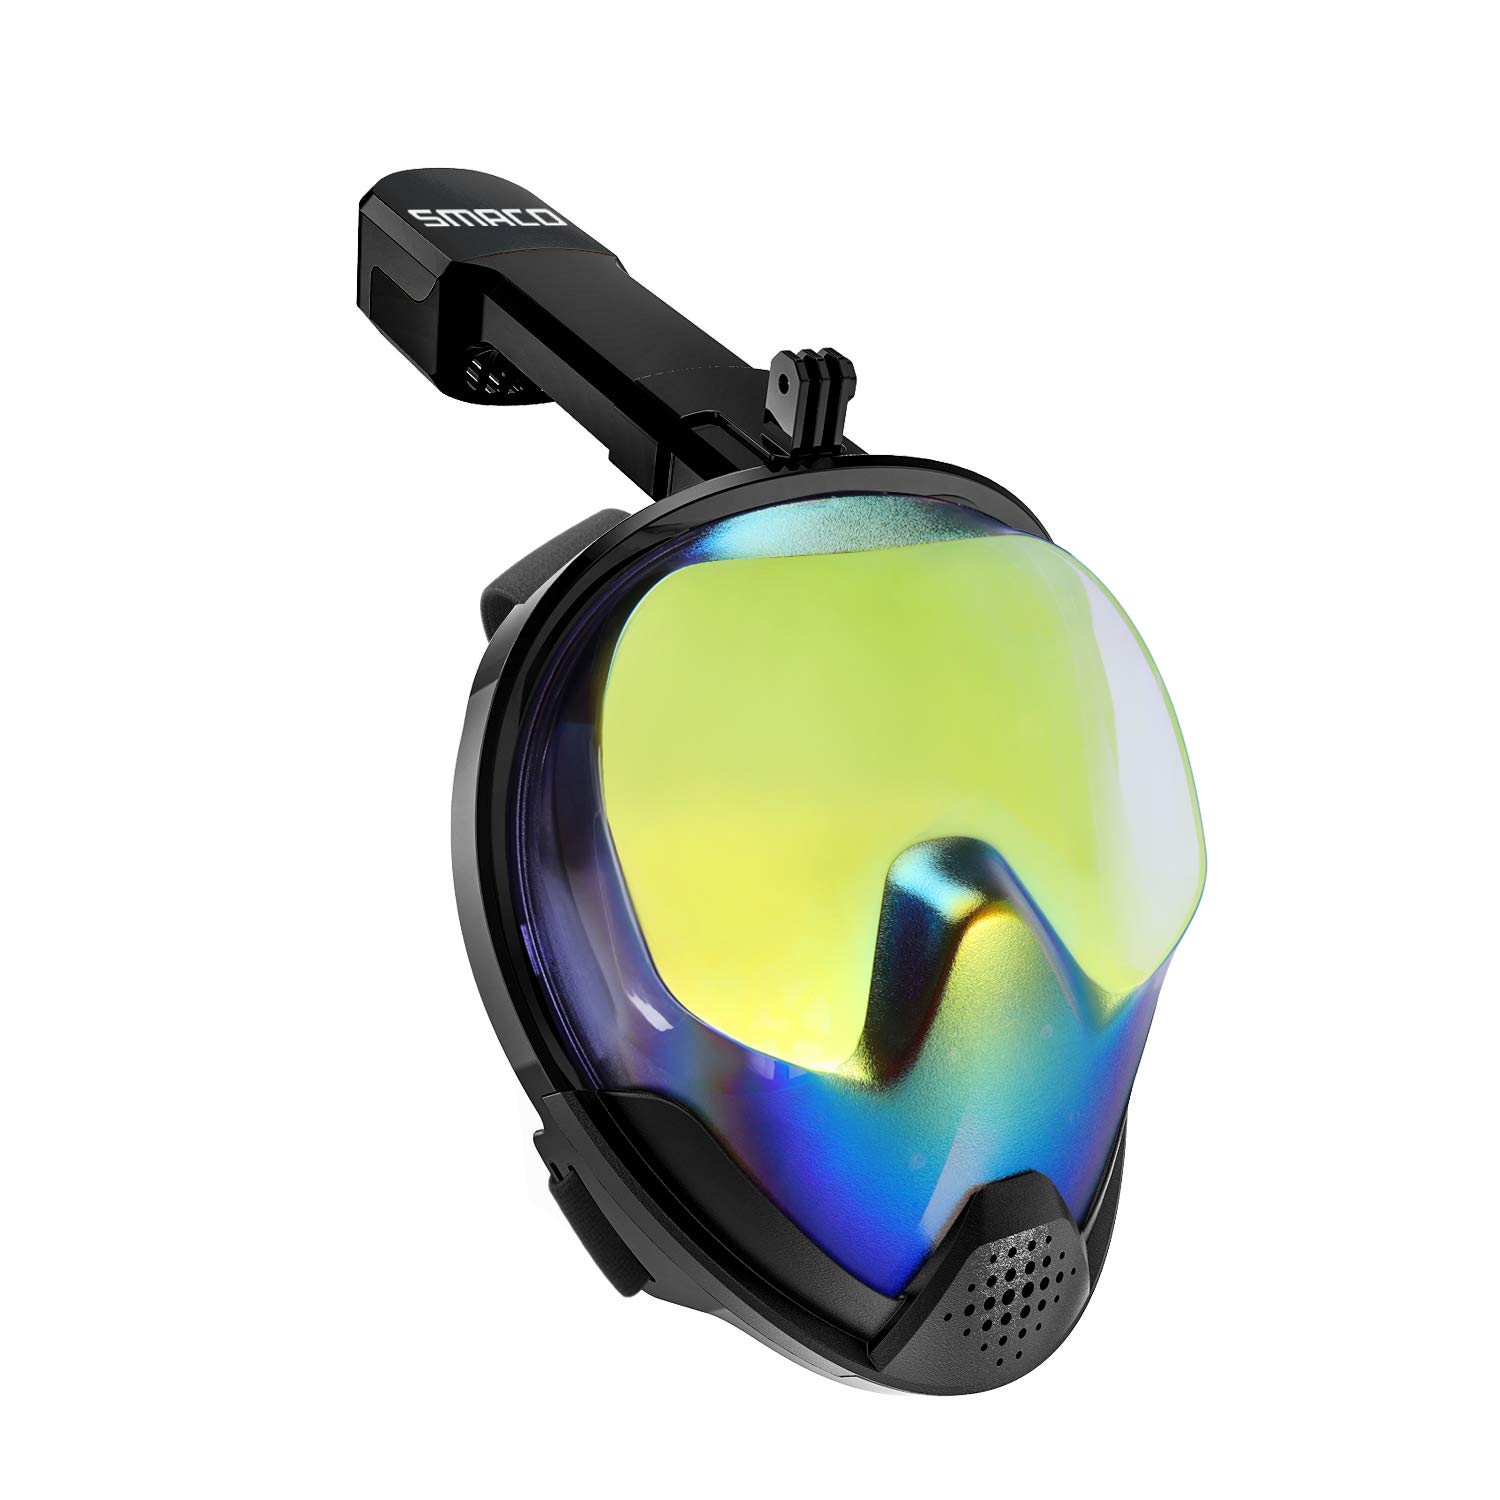 SMACO Full Face Snorkel Mask with UV Protection Anti-Fog Anti-Leak Snorkeling Mask with Detachable Camera Mount 180° Panoramic View Swimming Mask for Adults and Youth. by SMACO